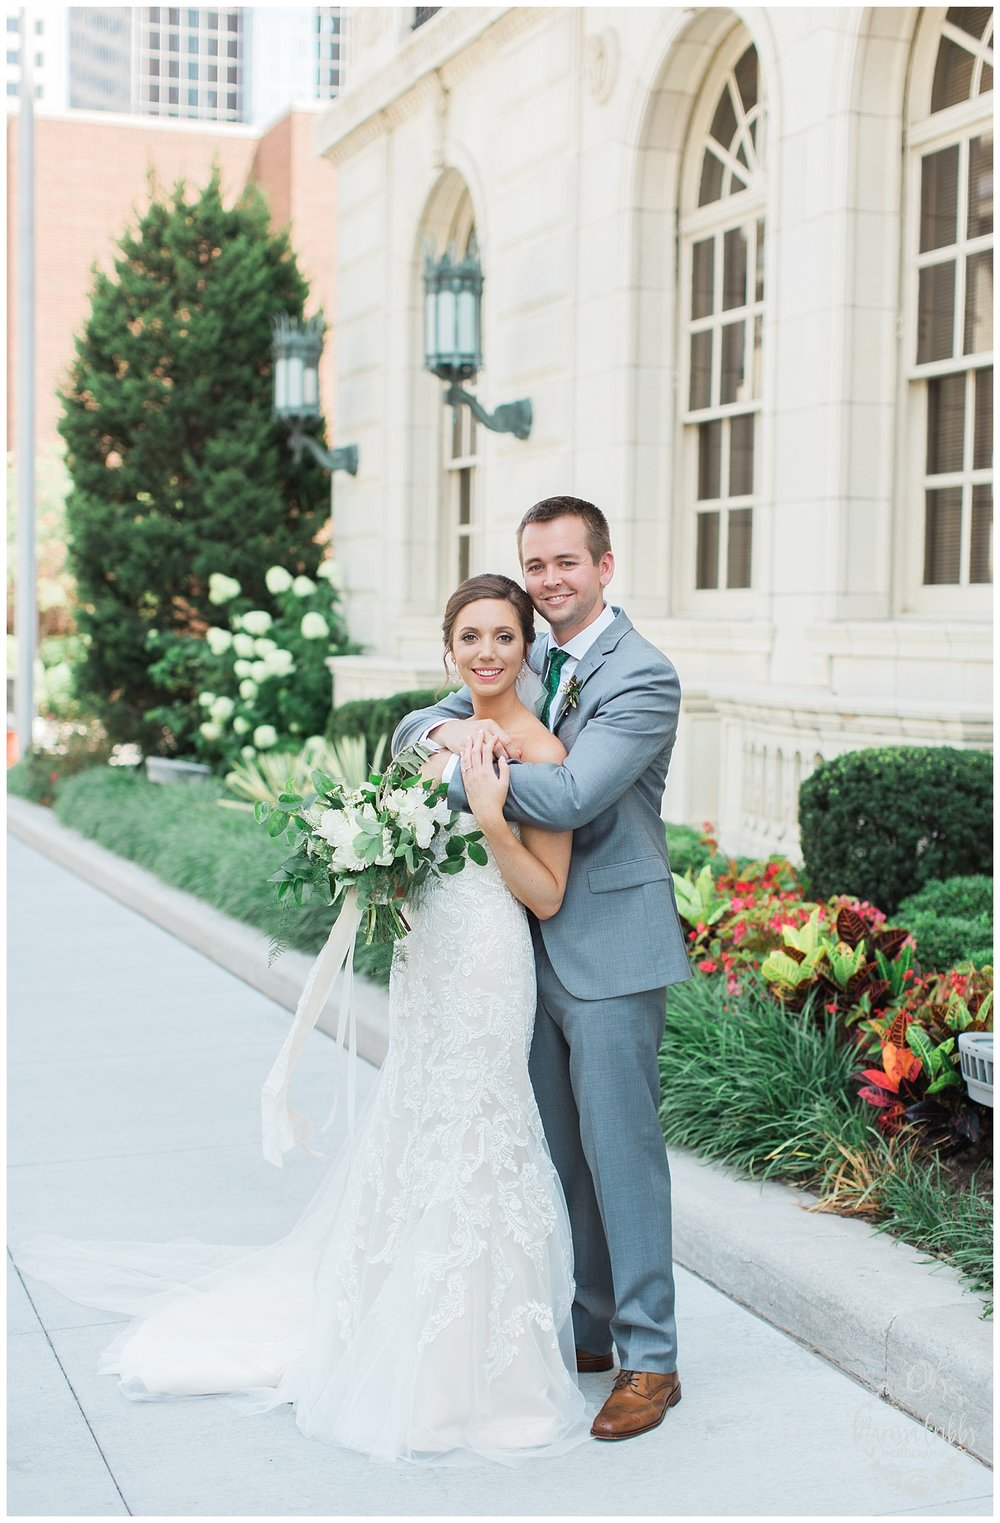 FEASTS OF FANCY KC WEDDING | THE HOBBS WEDDING KANSAS CITY | MARISSA CRIBBS PHOTOGRAPHY_2185.jpg